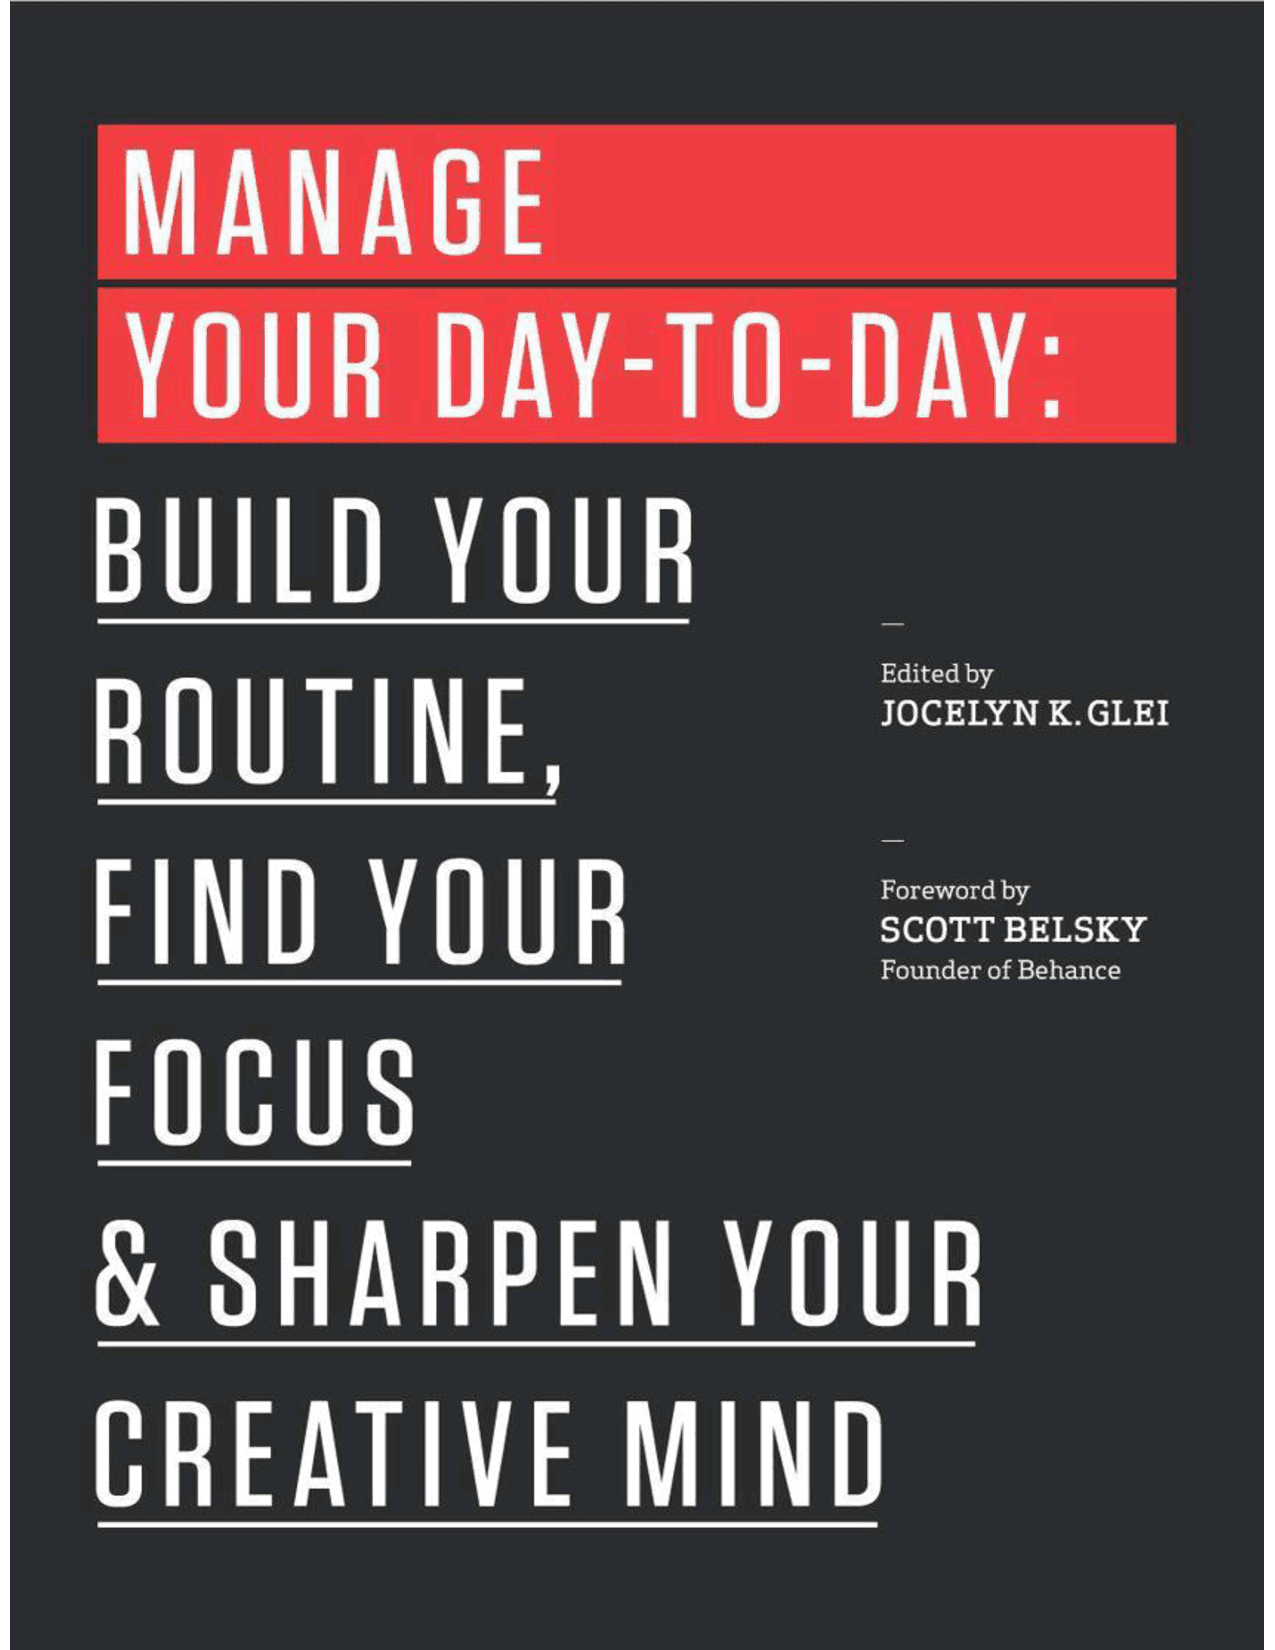 Manage Your Day-to-Day – Jocelyn Glei